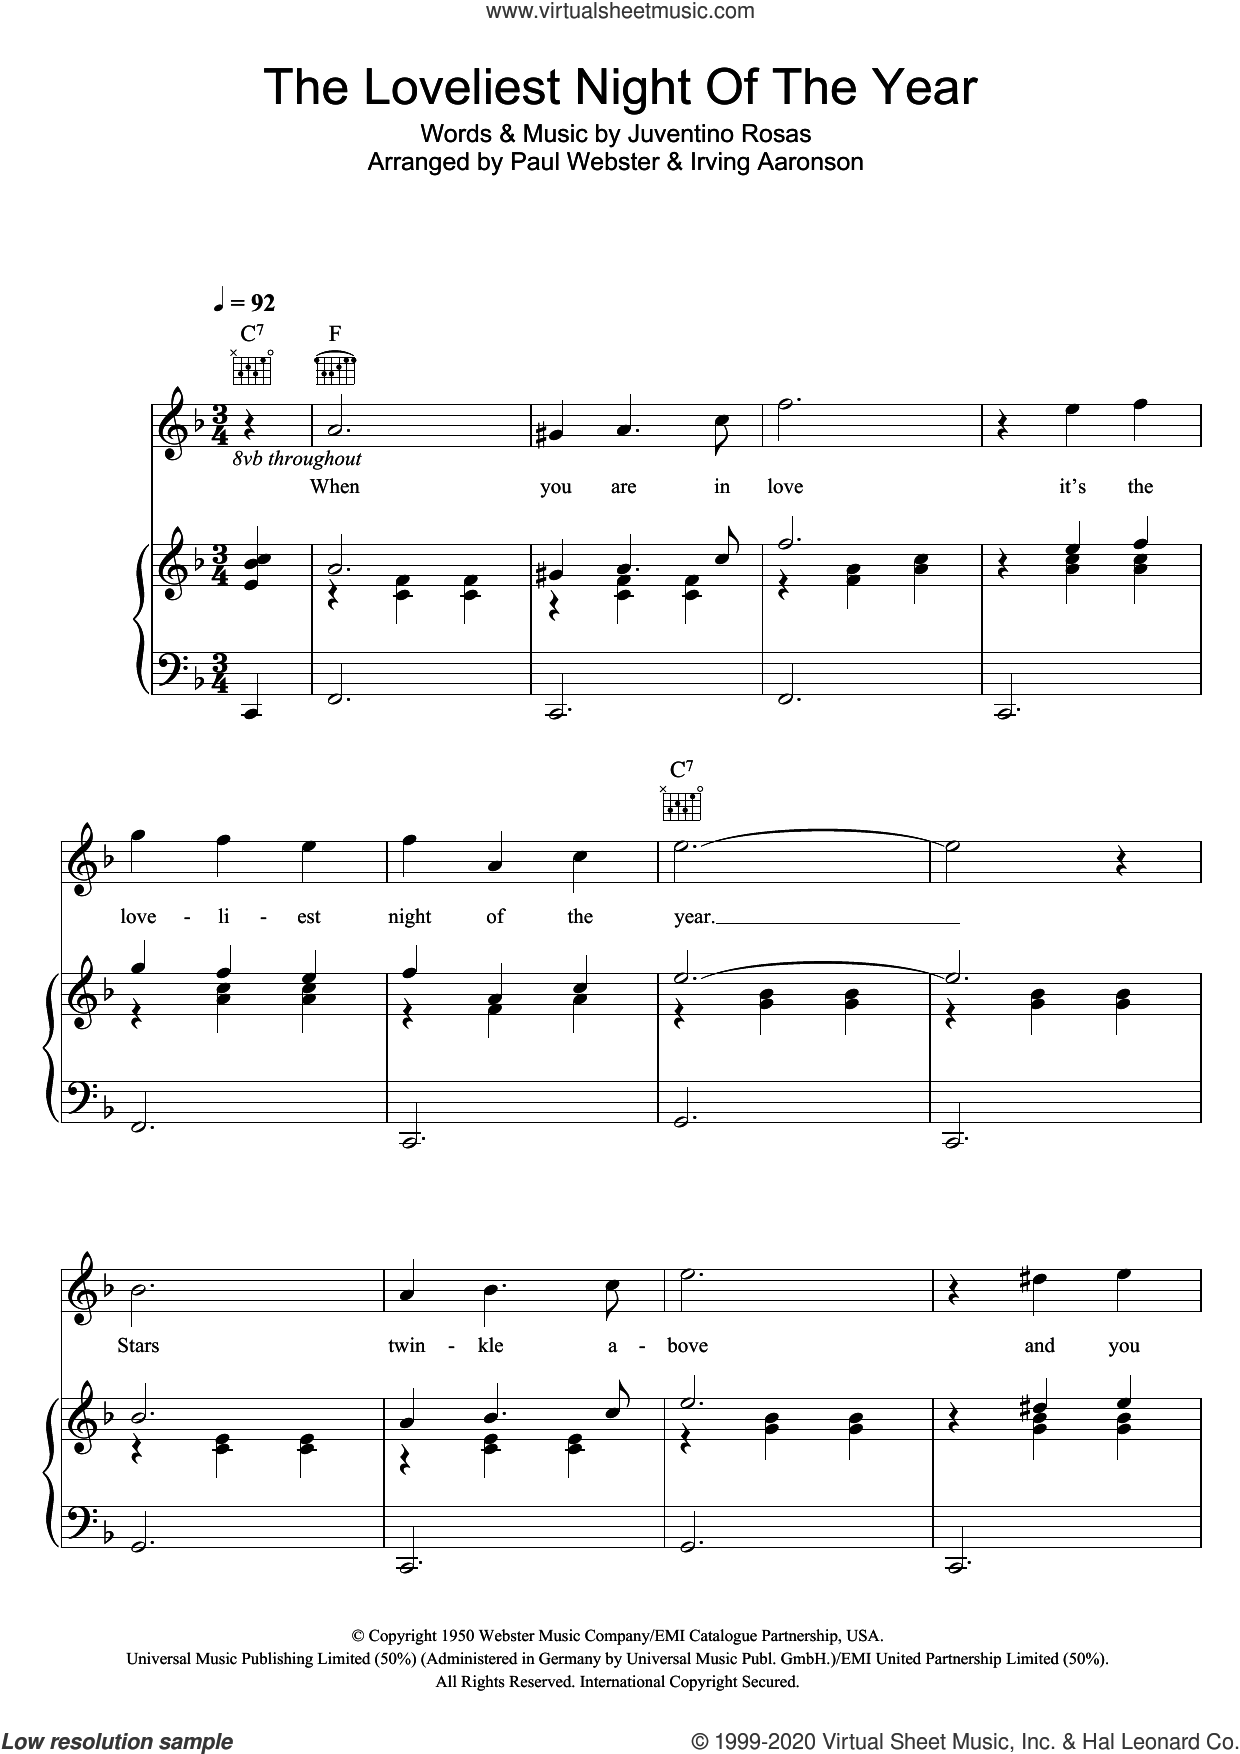 The Loveliest Night Of The Year sheet music for voice, piano or guitar by Vera Lynn and Juventino Rosas, intermediate skill level